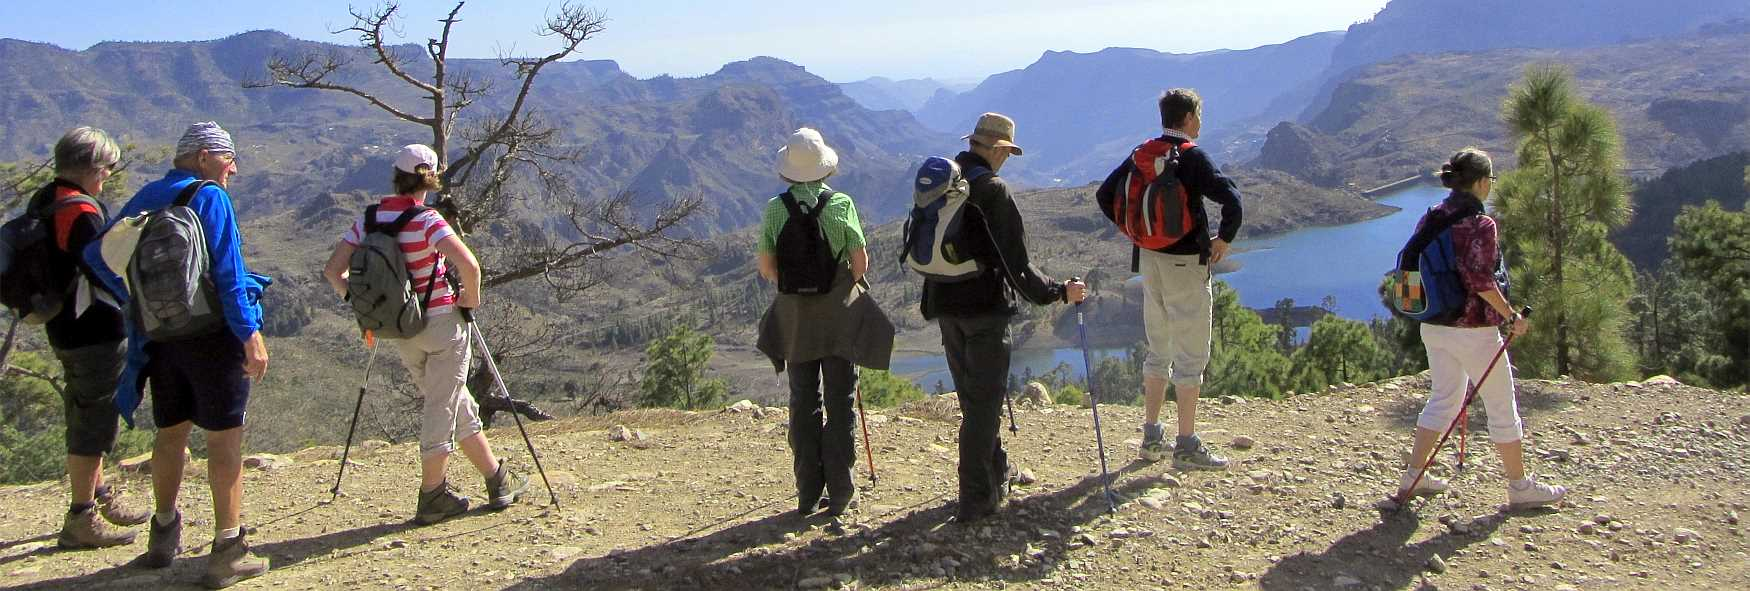 Gran Canaria Hiking Tours